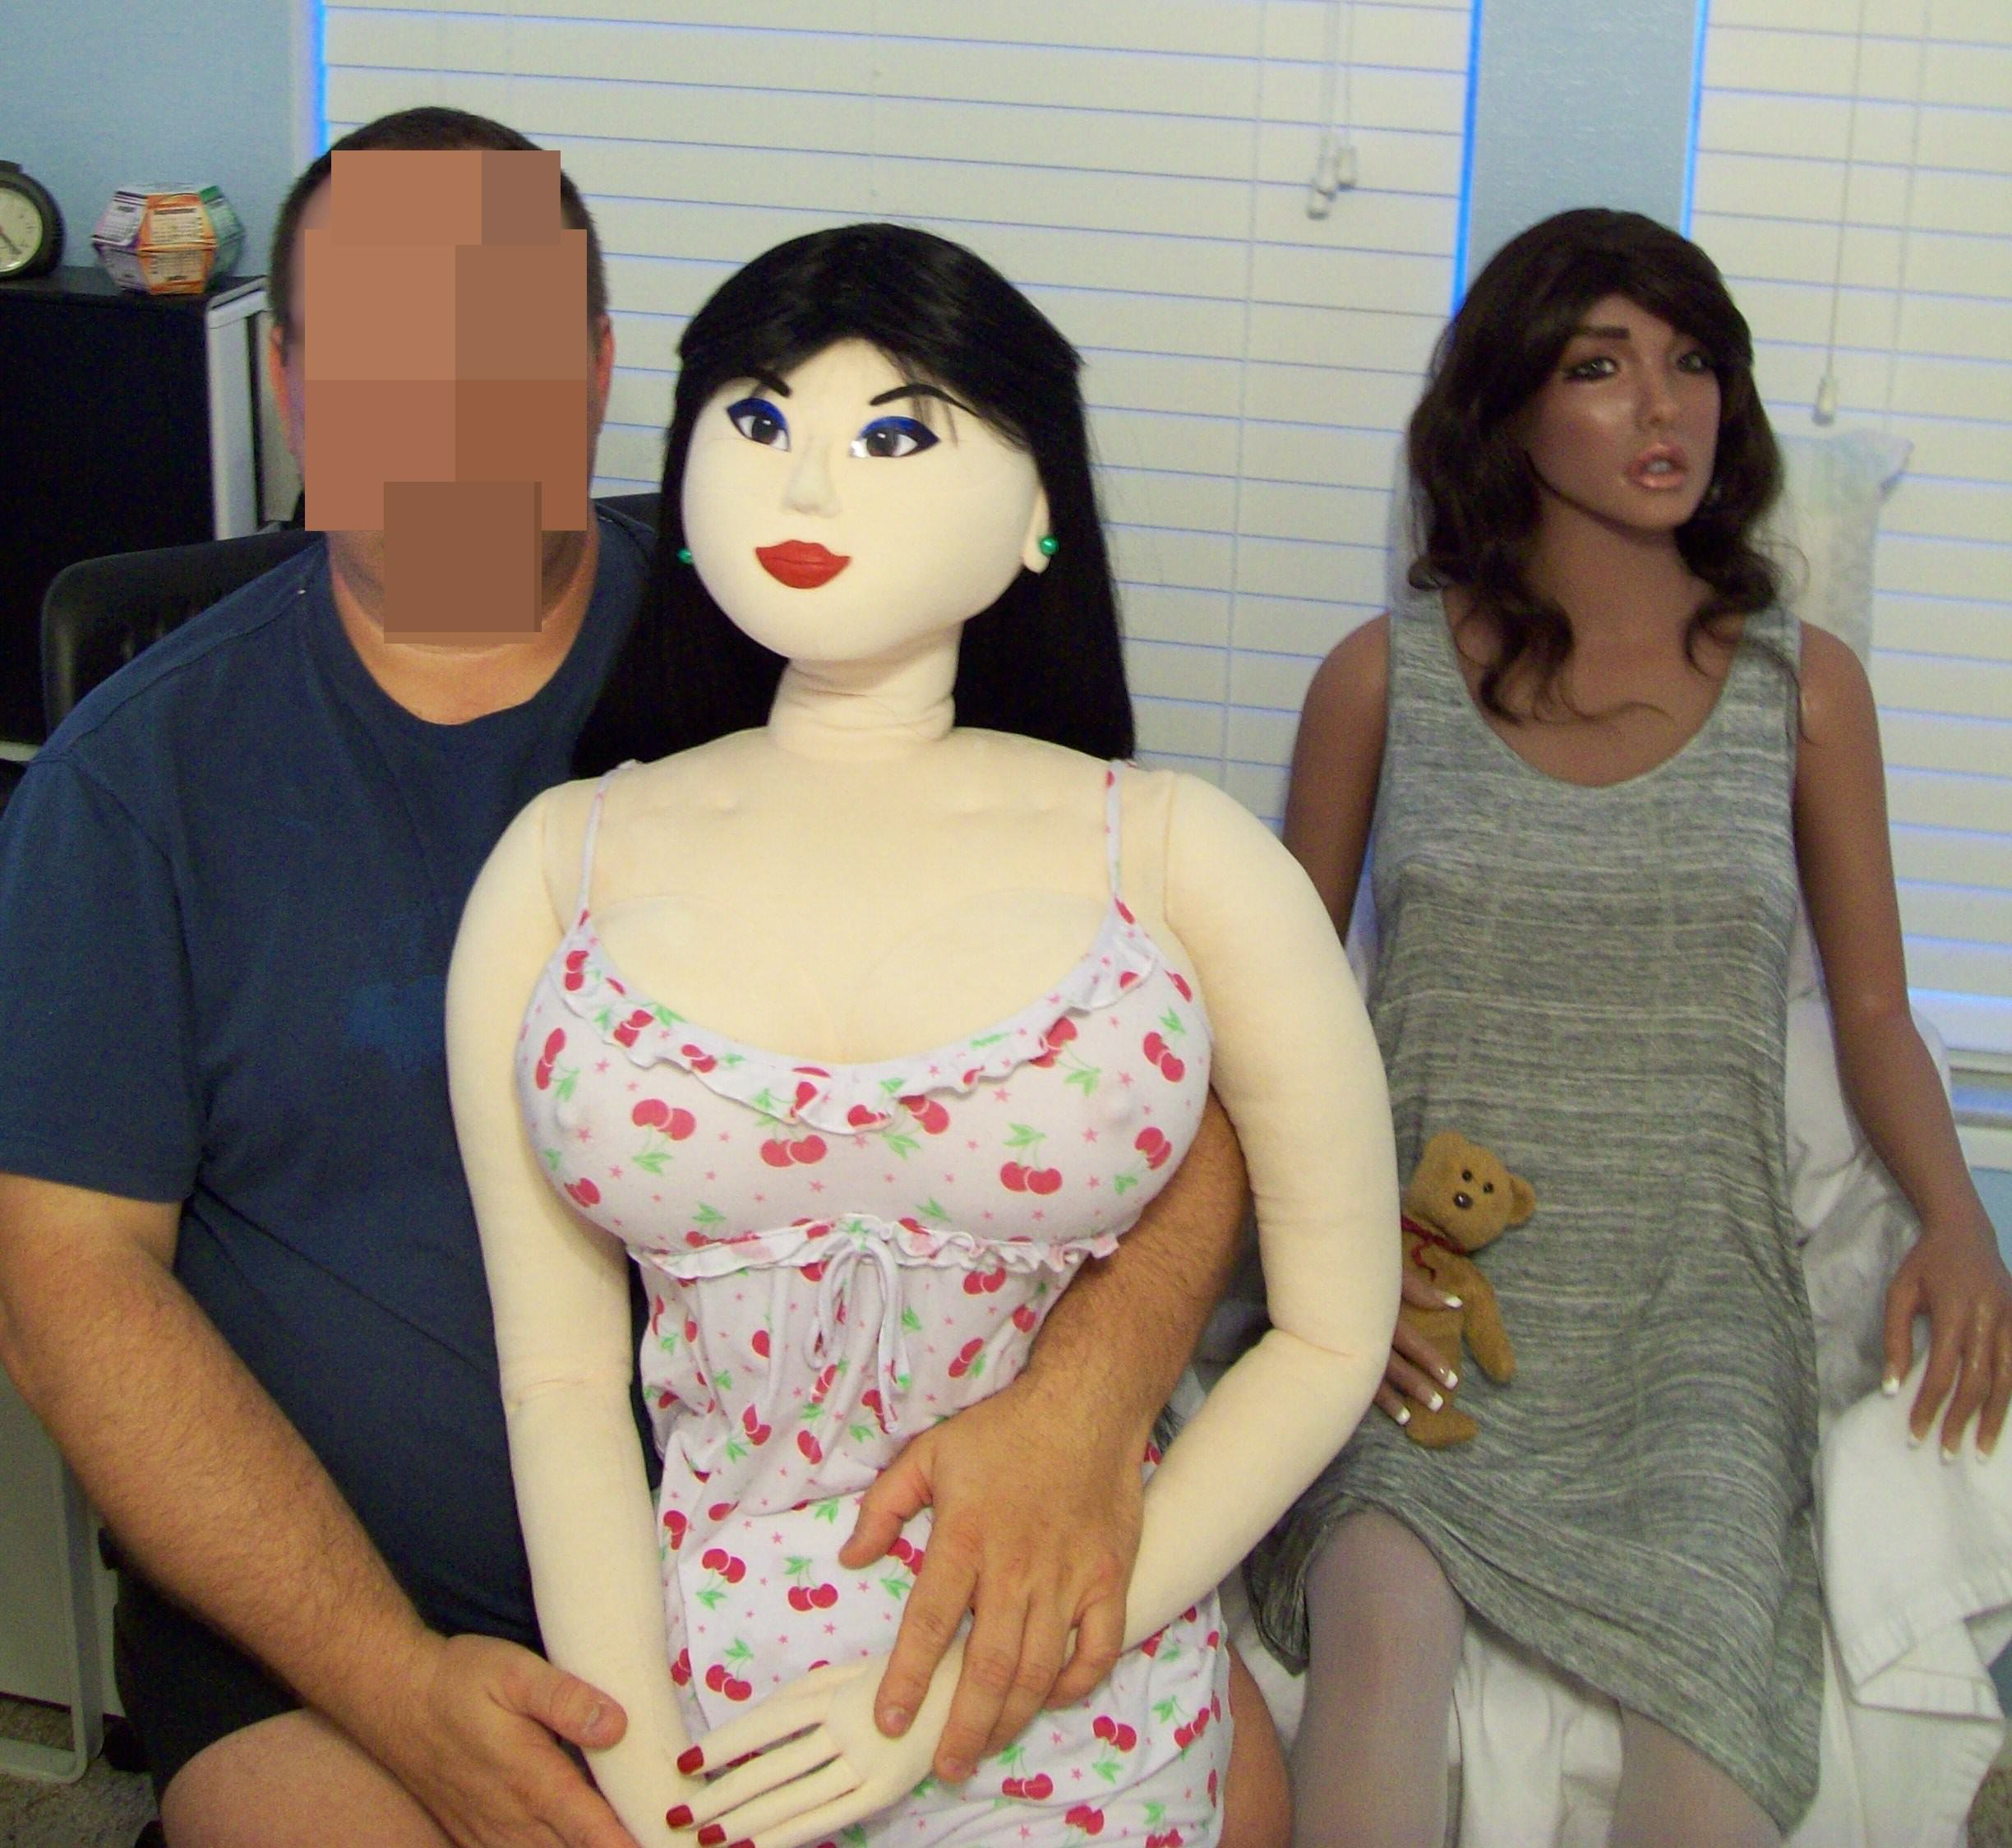 Would You Sleep With Any Of These Creepy Realistic Sex Robots? 101 3105 blurred